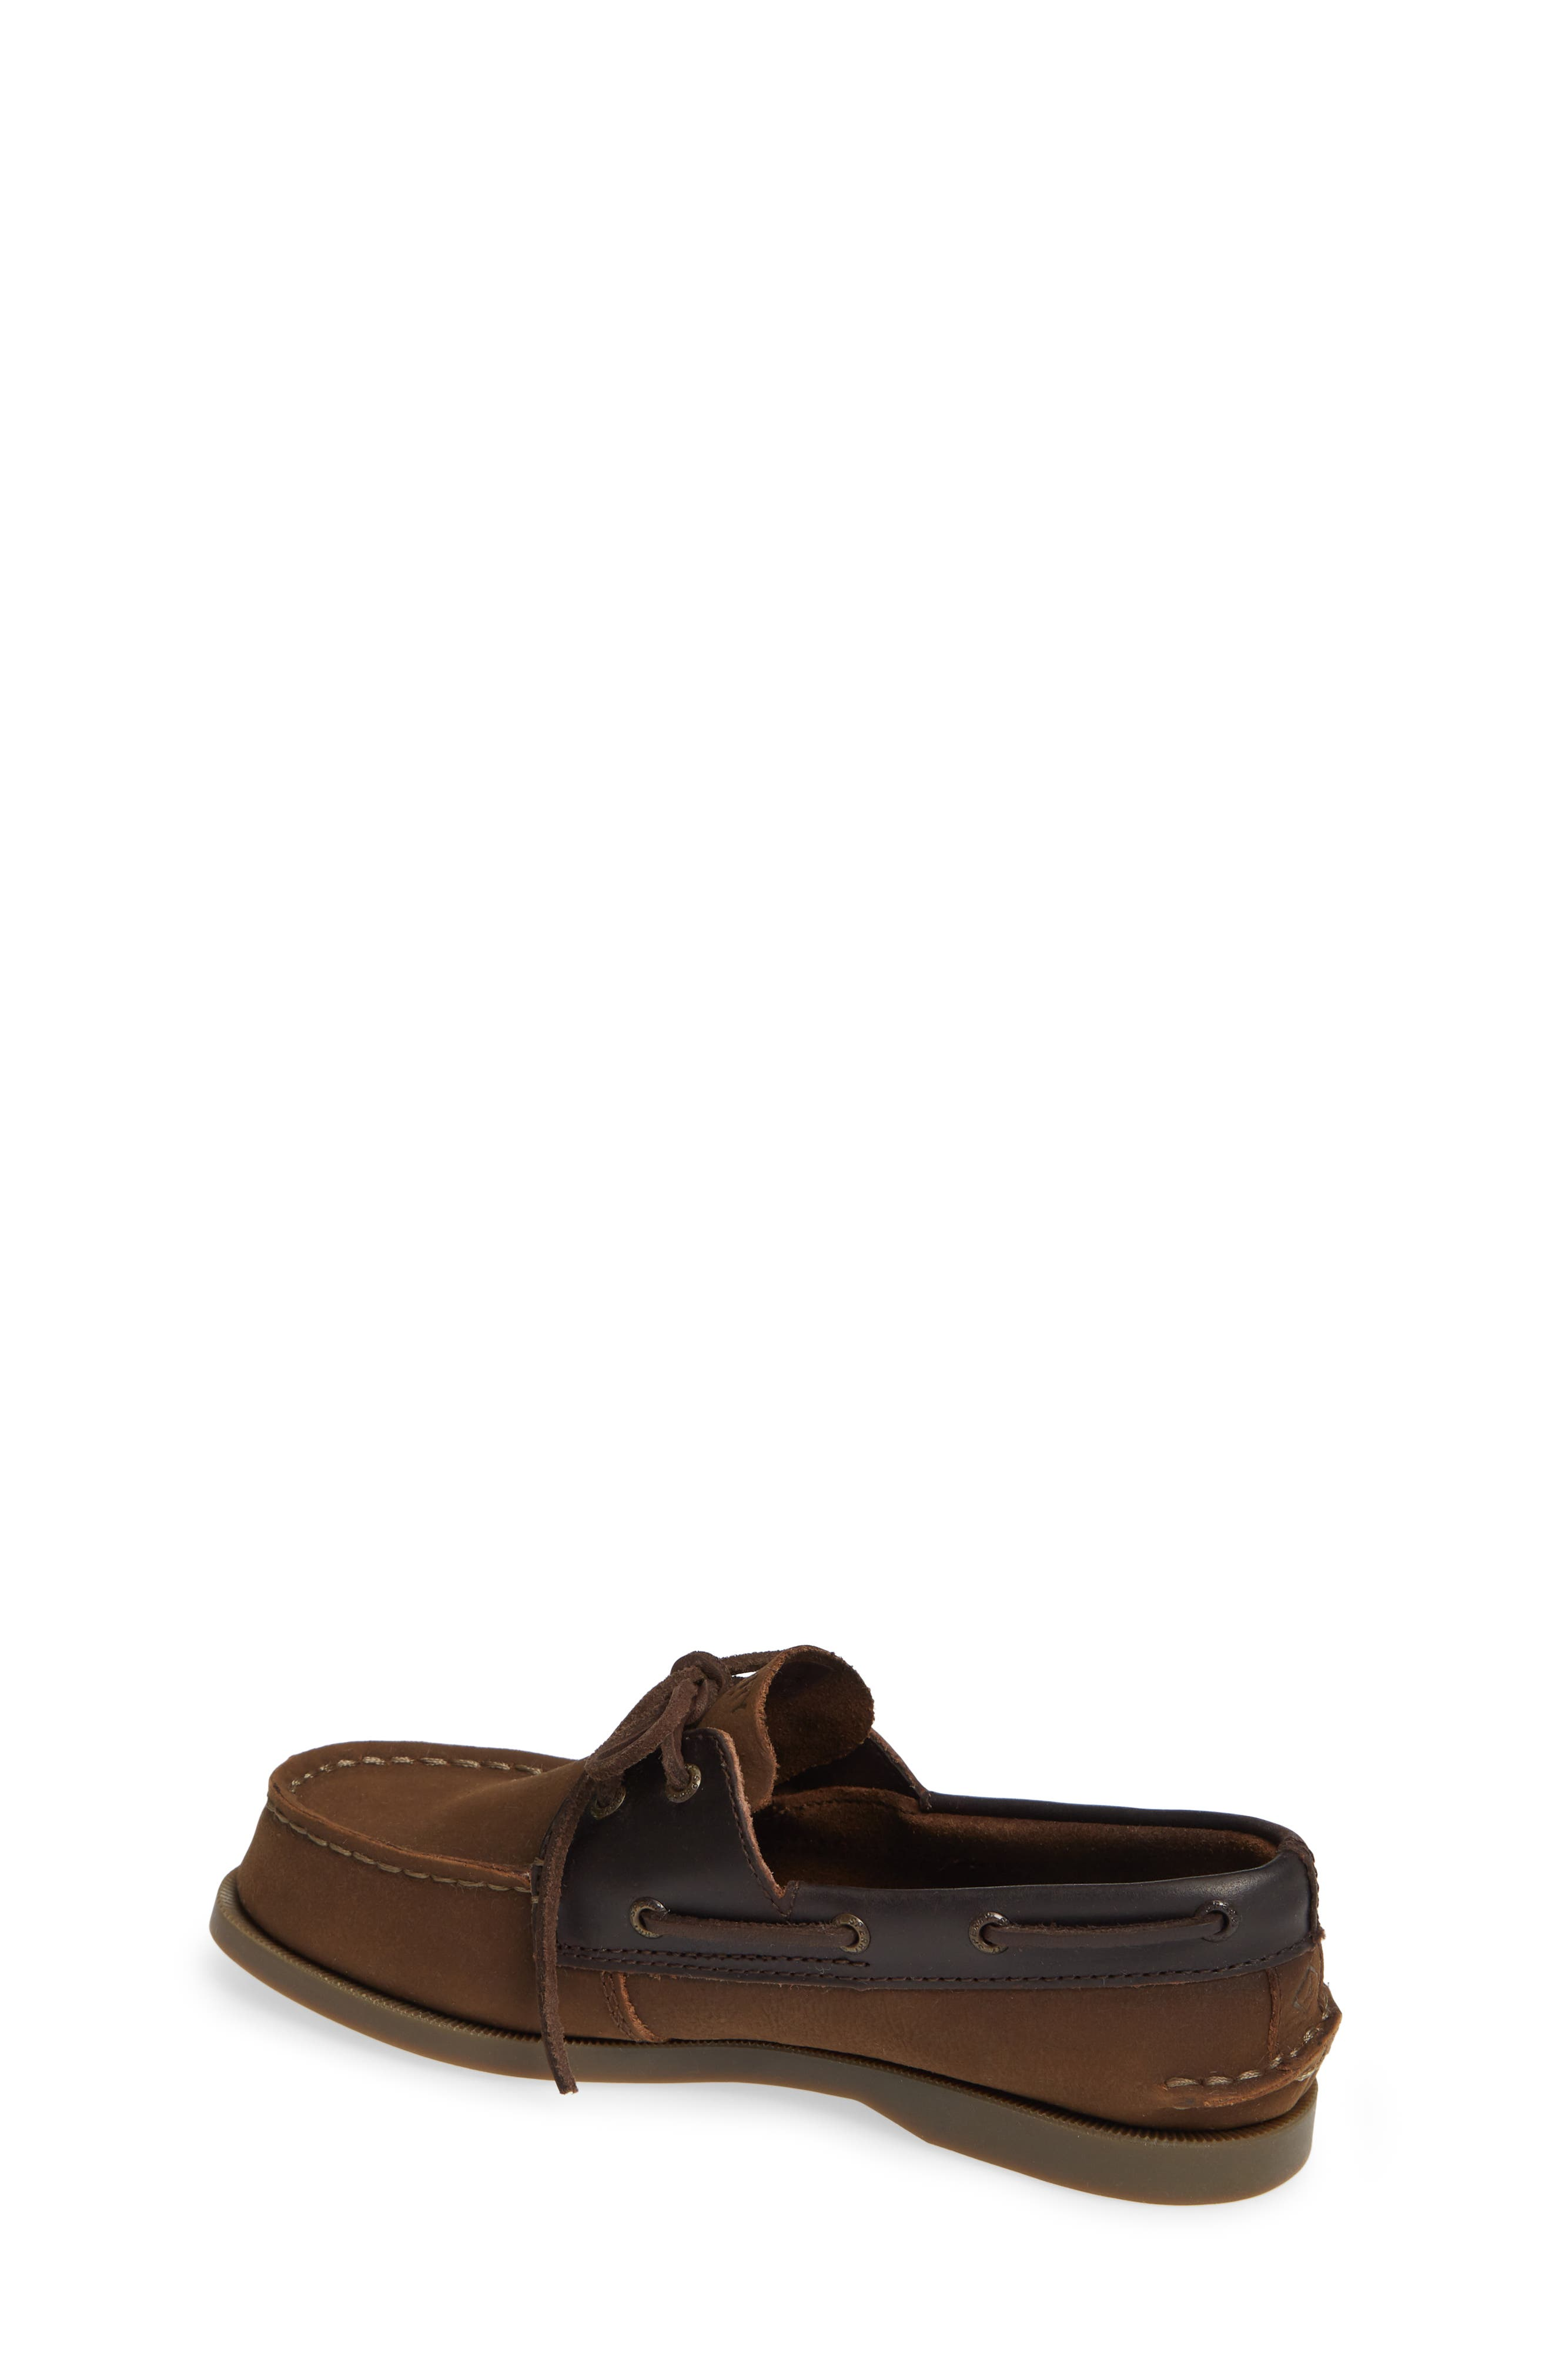 SPERRY KIDS, 'Authentic Original' Boat Shoe, Alternate thumbnail 2, color, BROWN BUCK LEATHER